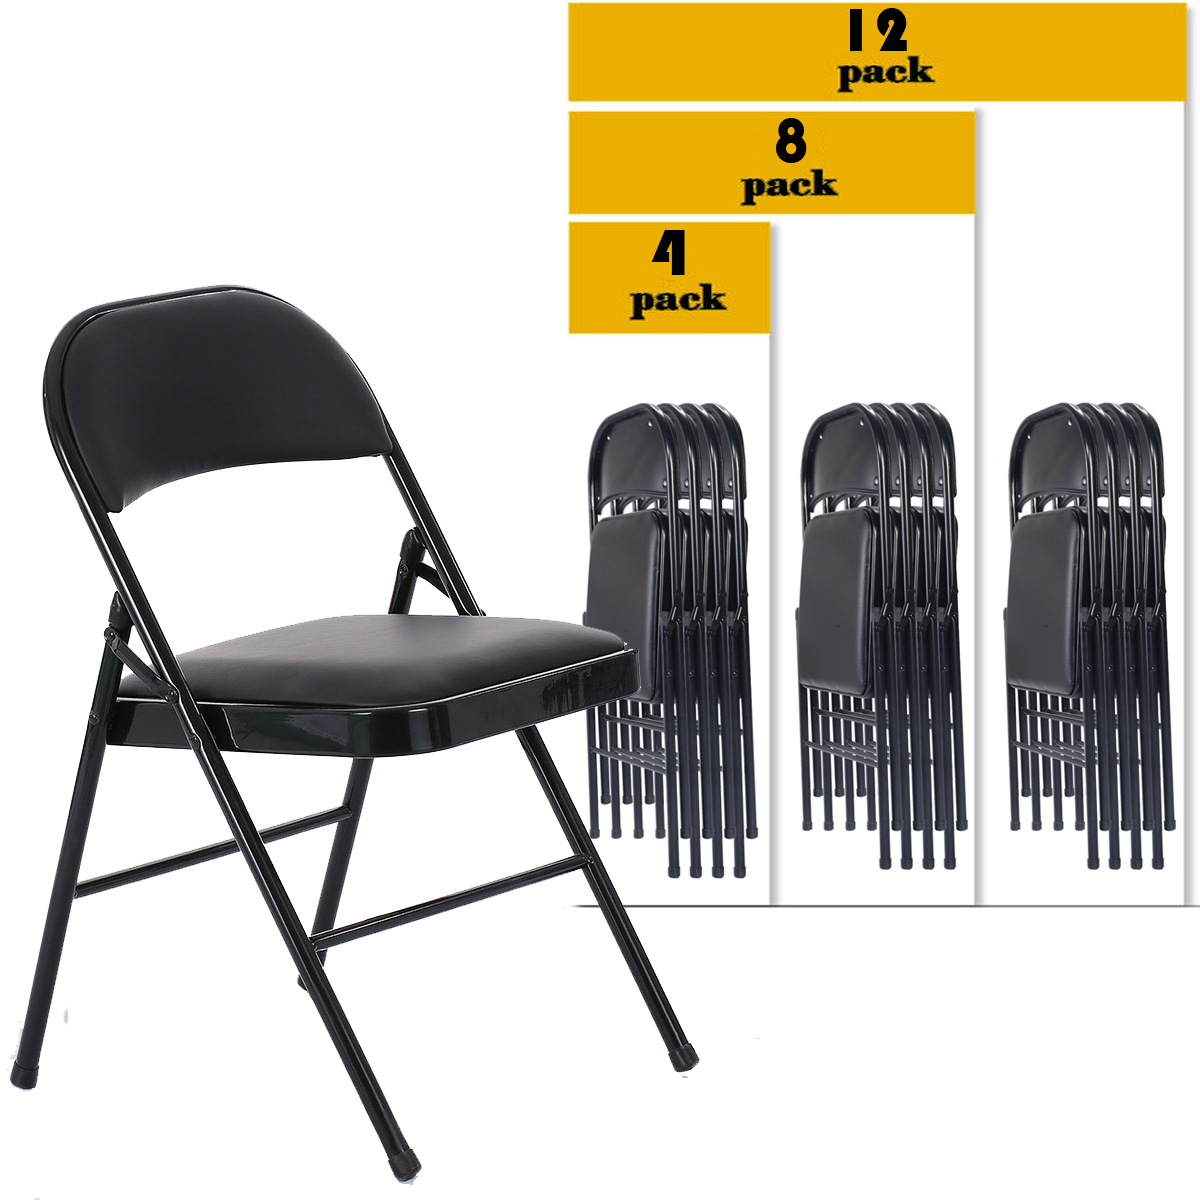 Astonishing Details About 4 8 12 Pack Folding Chair Fabric Upholstered Padded Seat Metal Frame Home Office Creativecarmelina Interior Chair Design Creativecarmelinacom